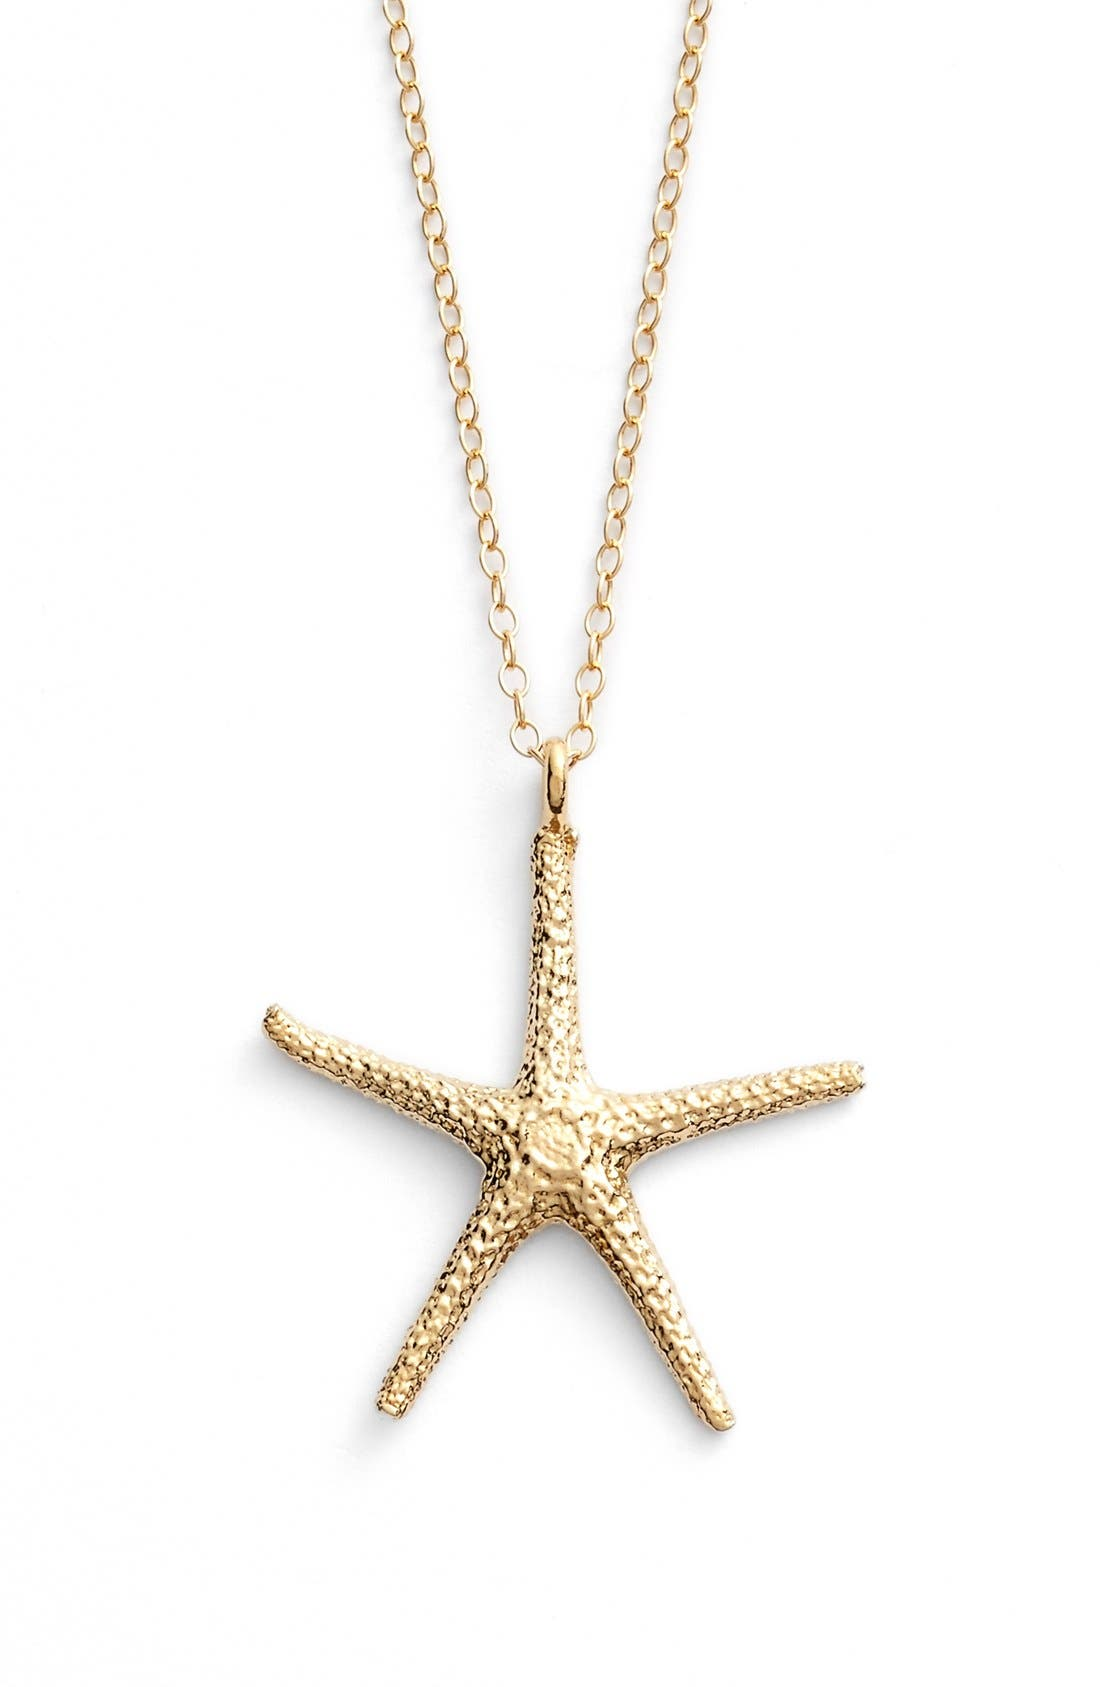 Main Image - ki-ele Large Hawaiian Starfish Pendant Necklace